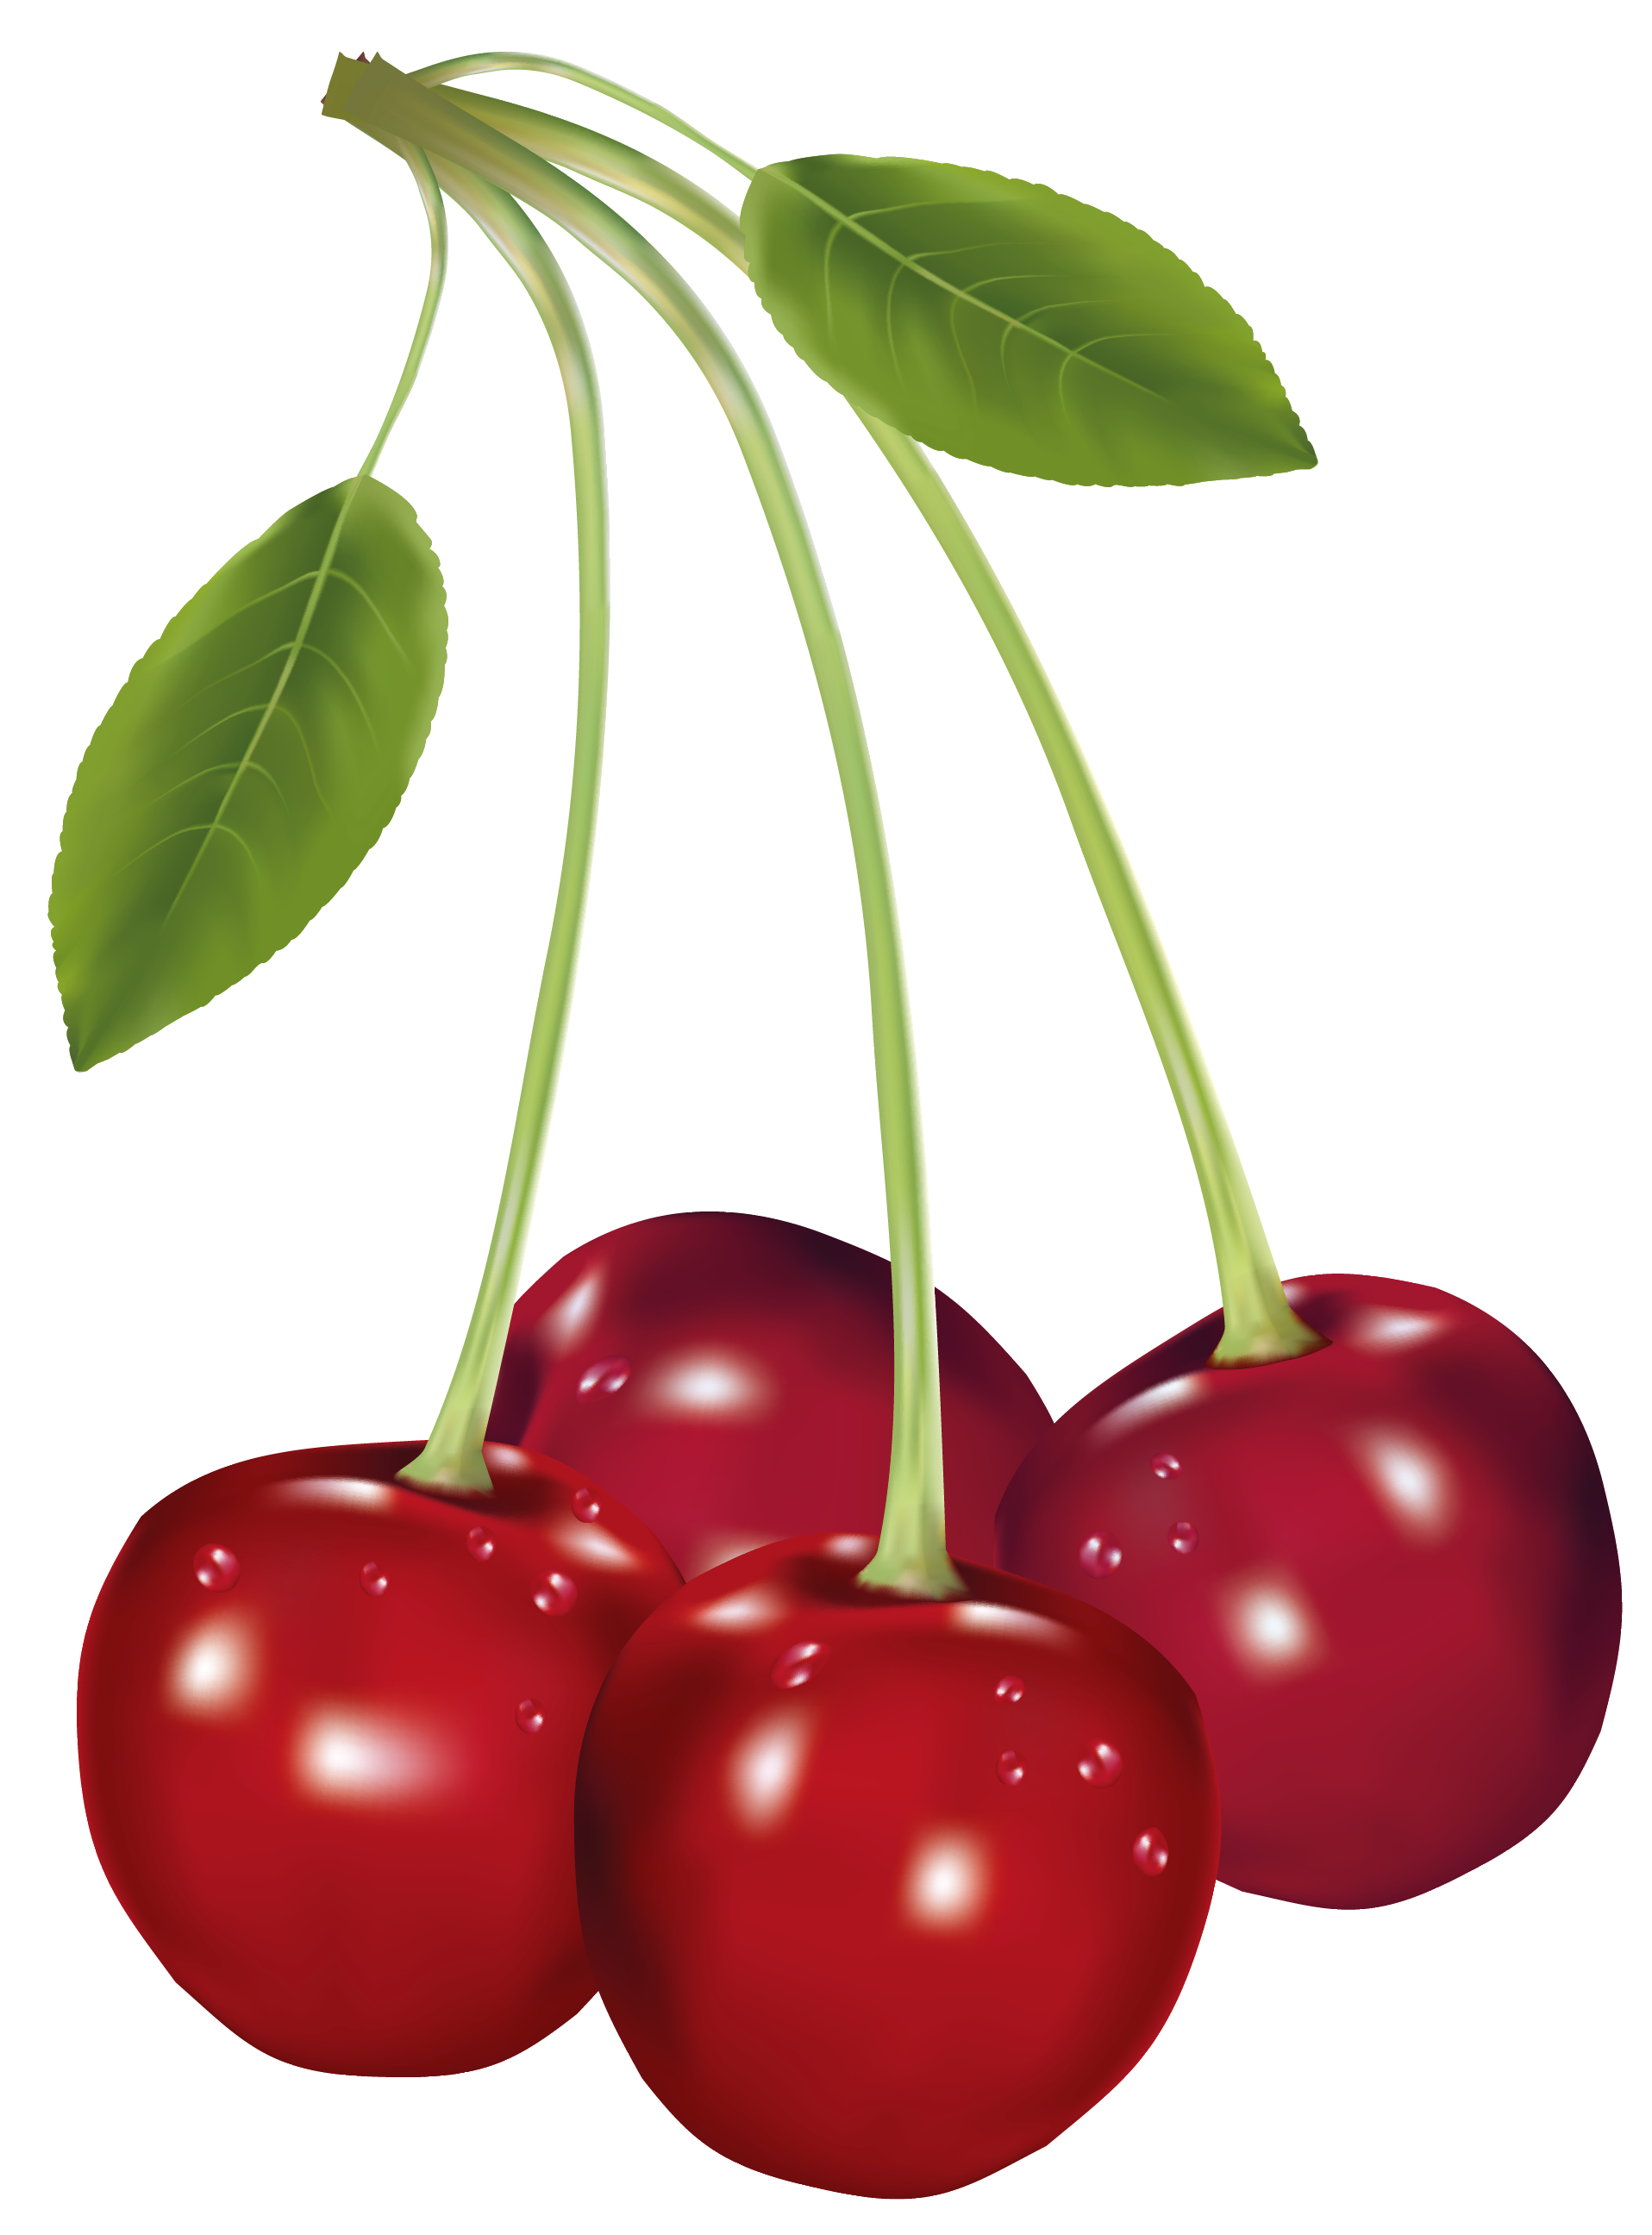 1916x2592 Cherries Png Clipart Pictureu200b Gallery Yopriceville